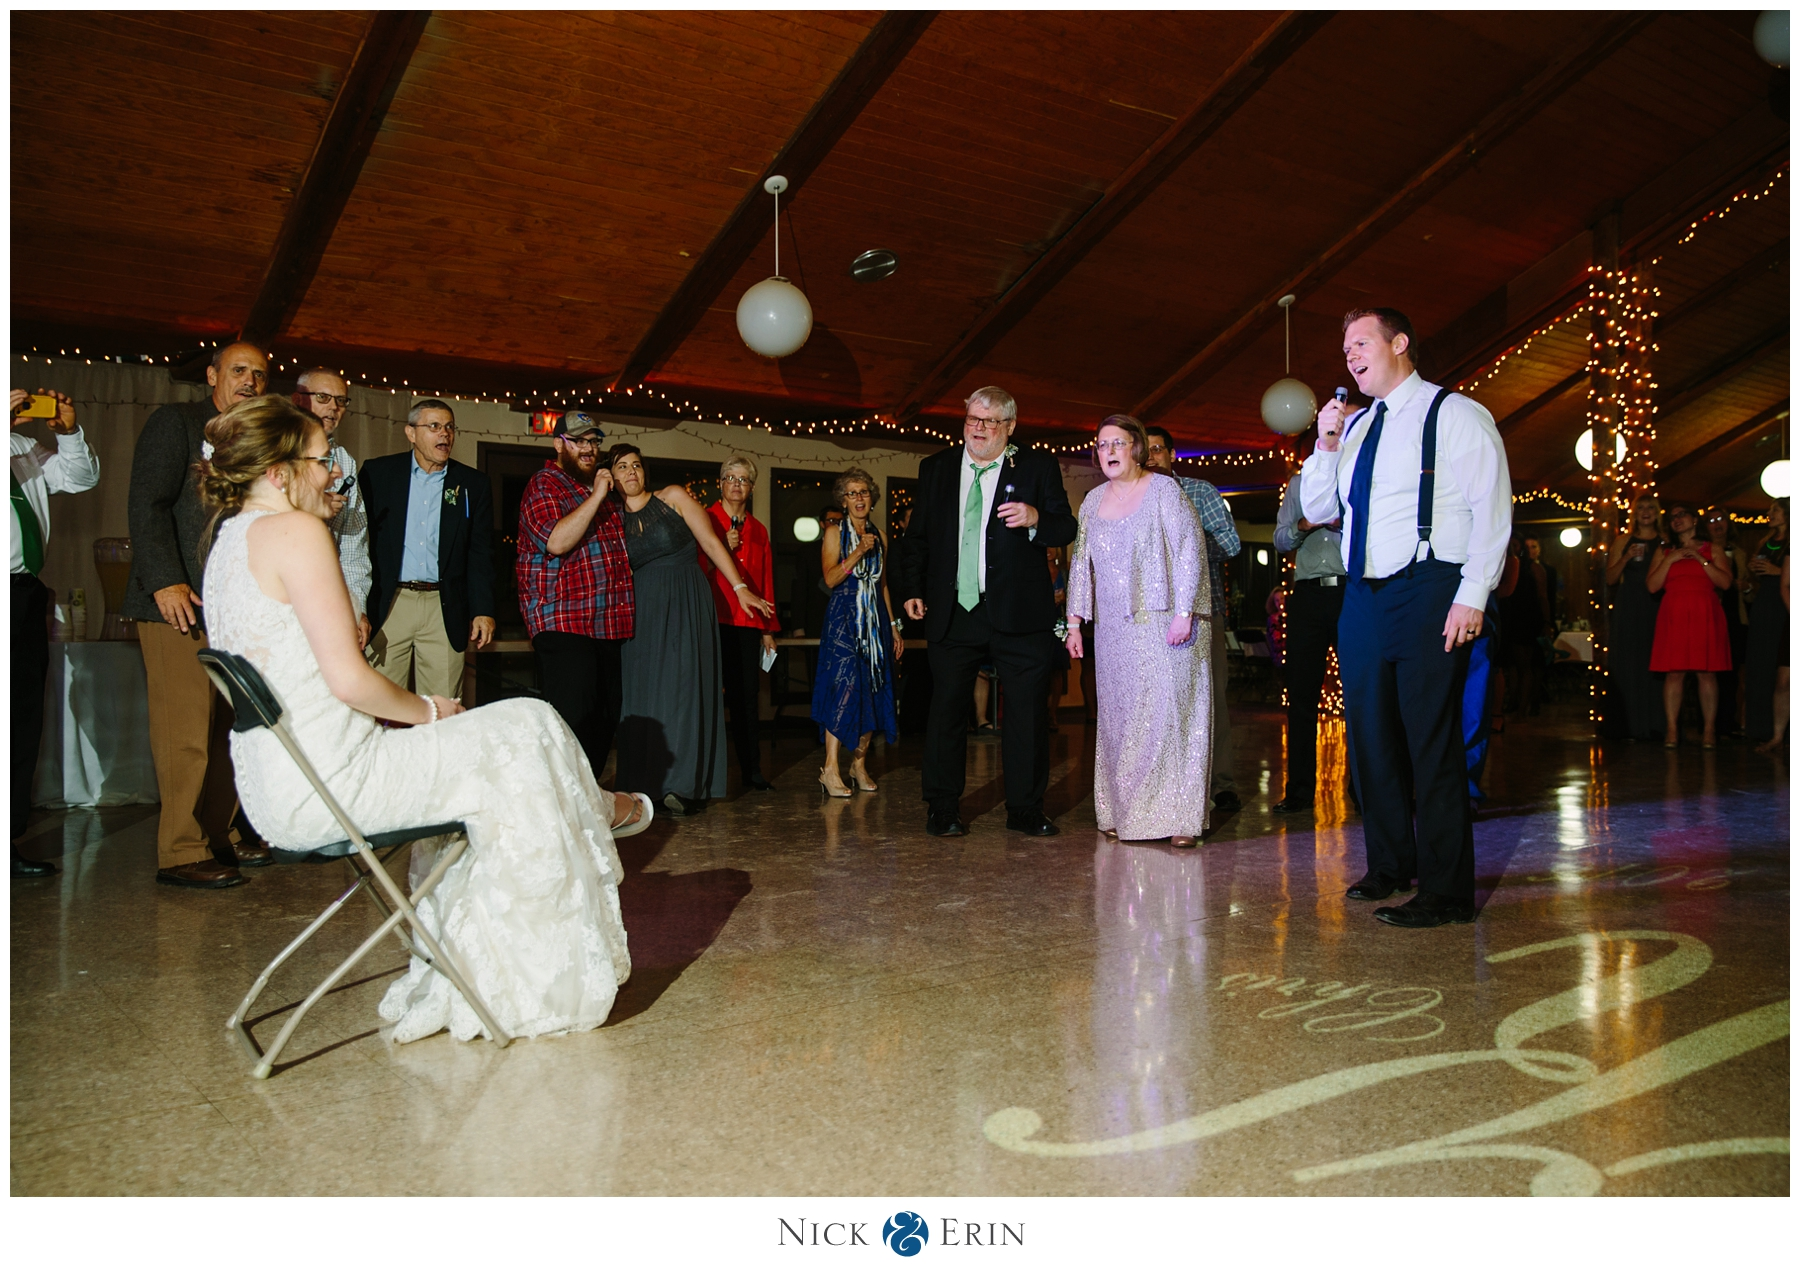 donner_photography_iowa-wedding_katie-chris_0054